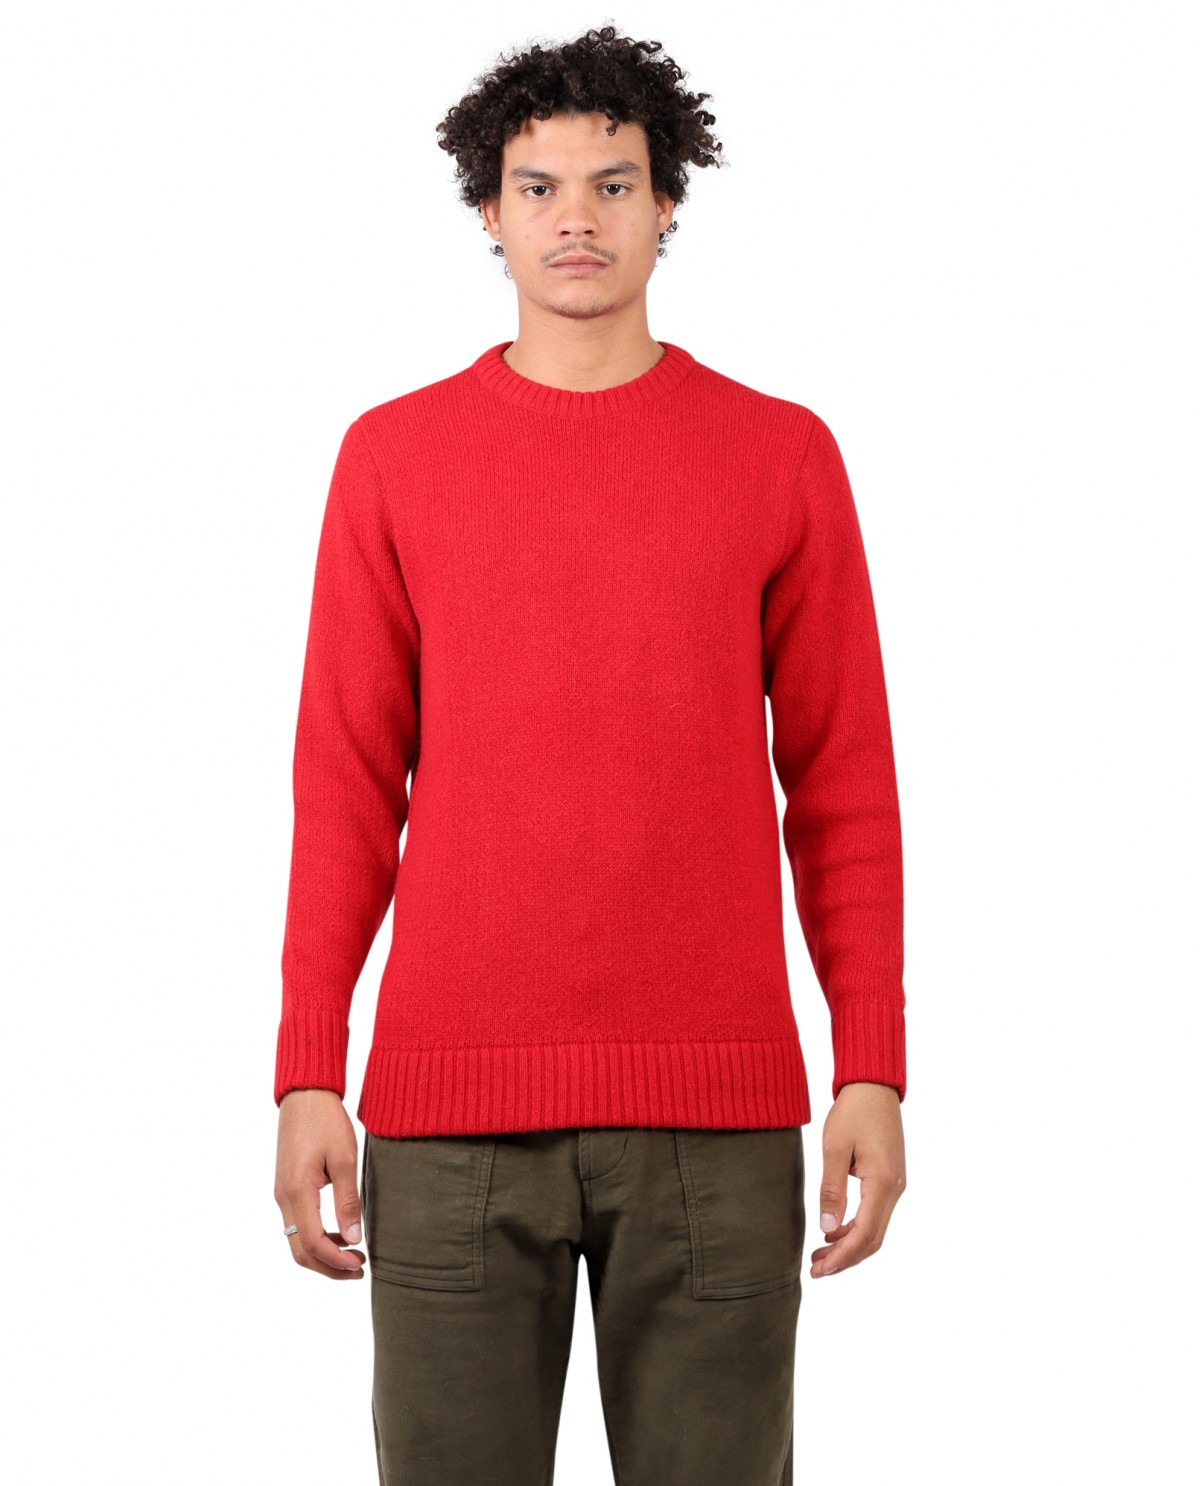 The Inoue Brothers red logo sweater